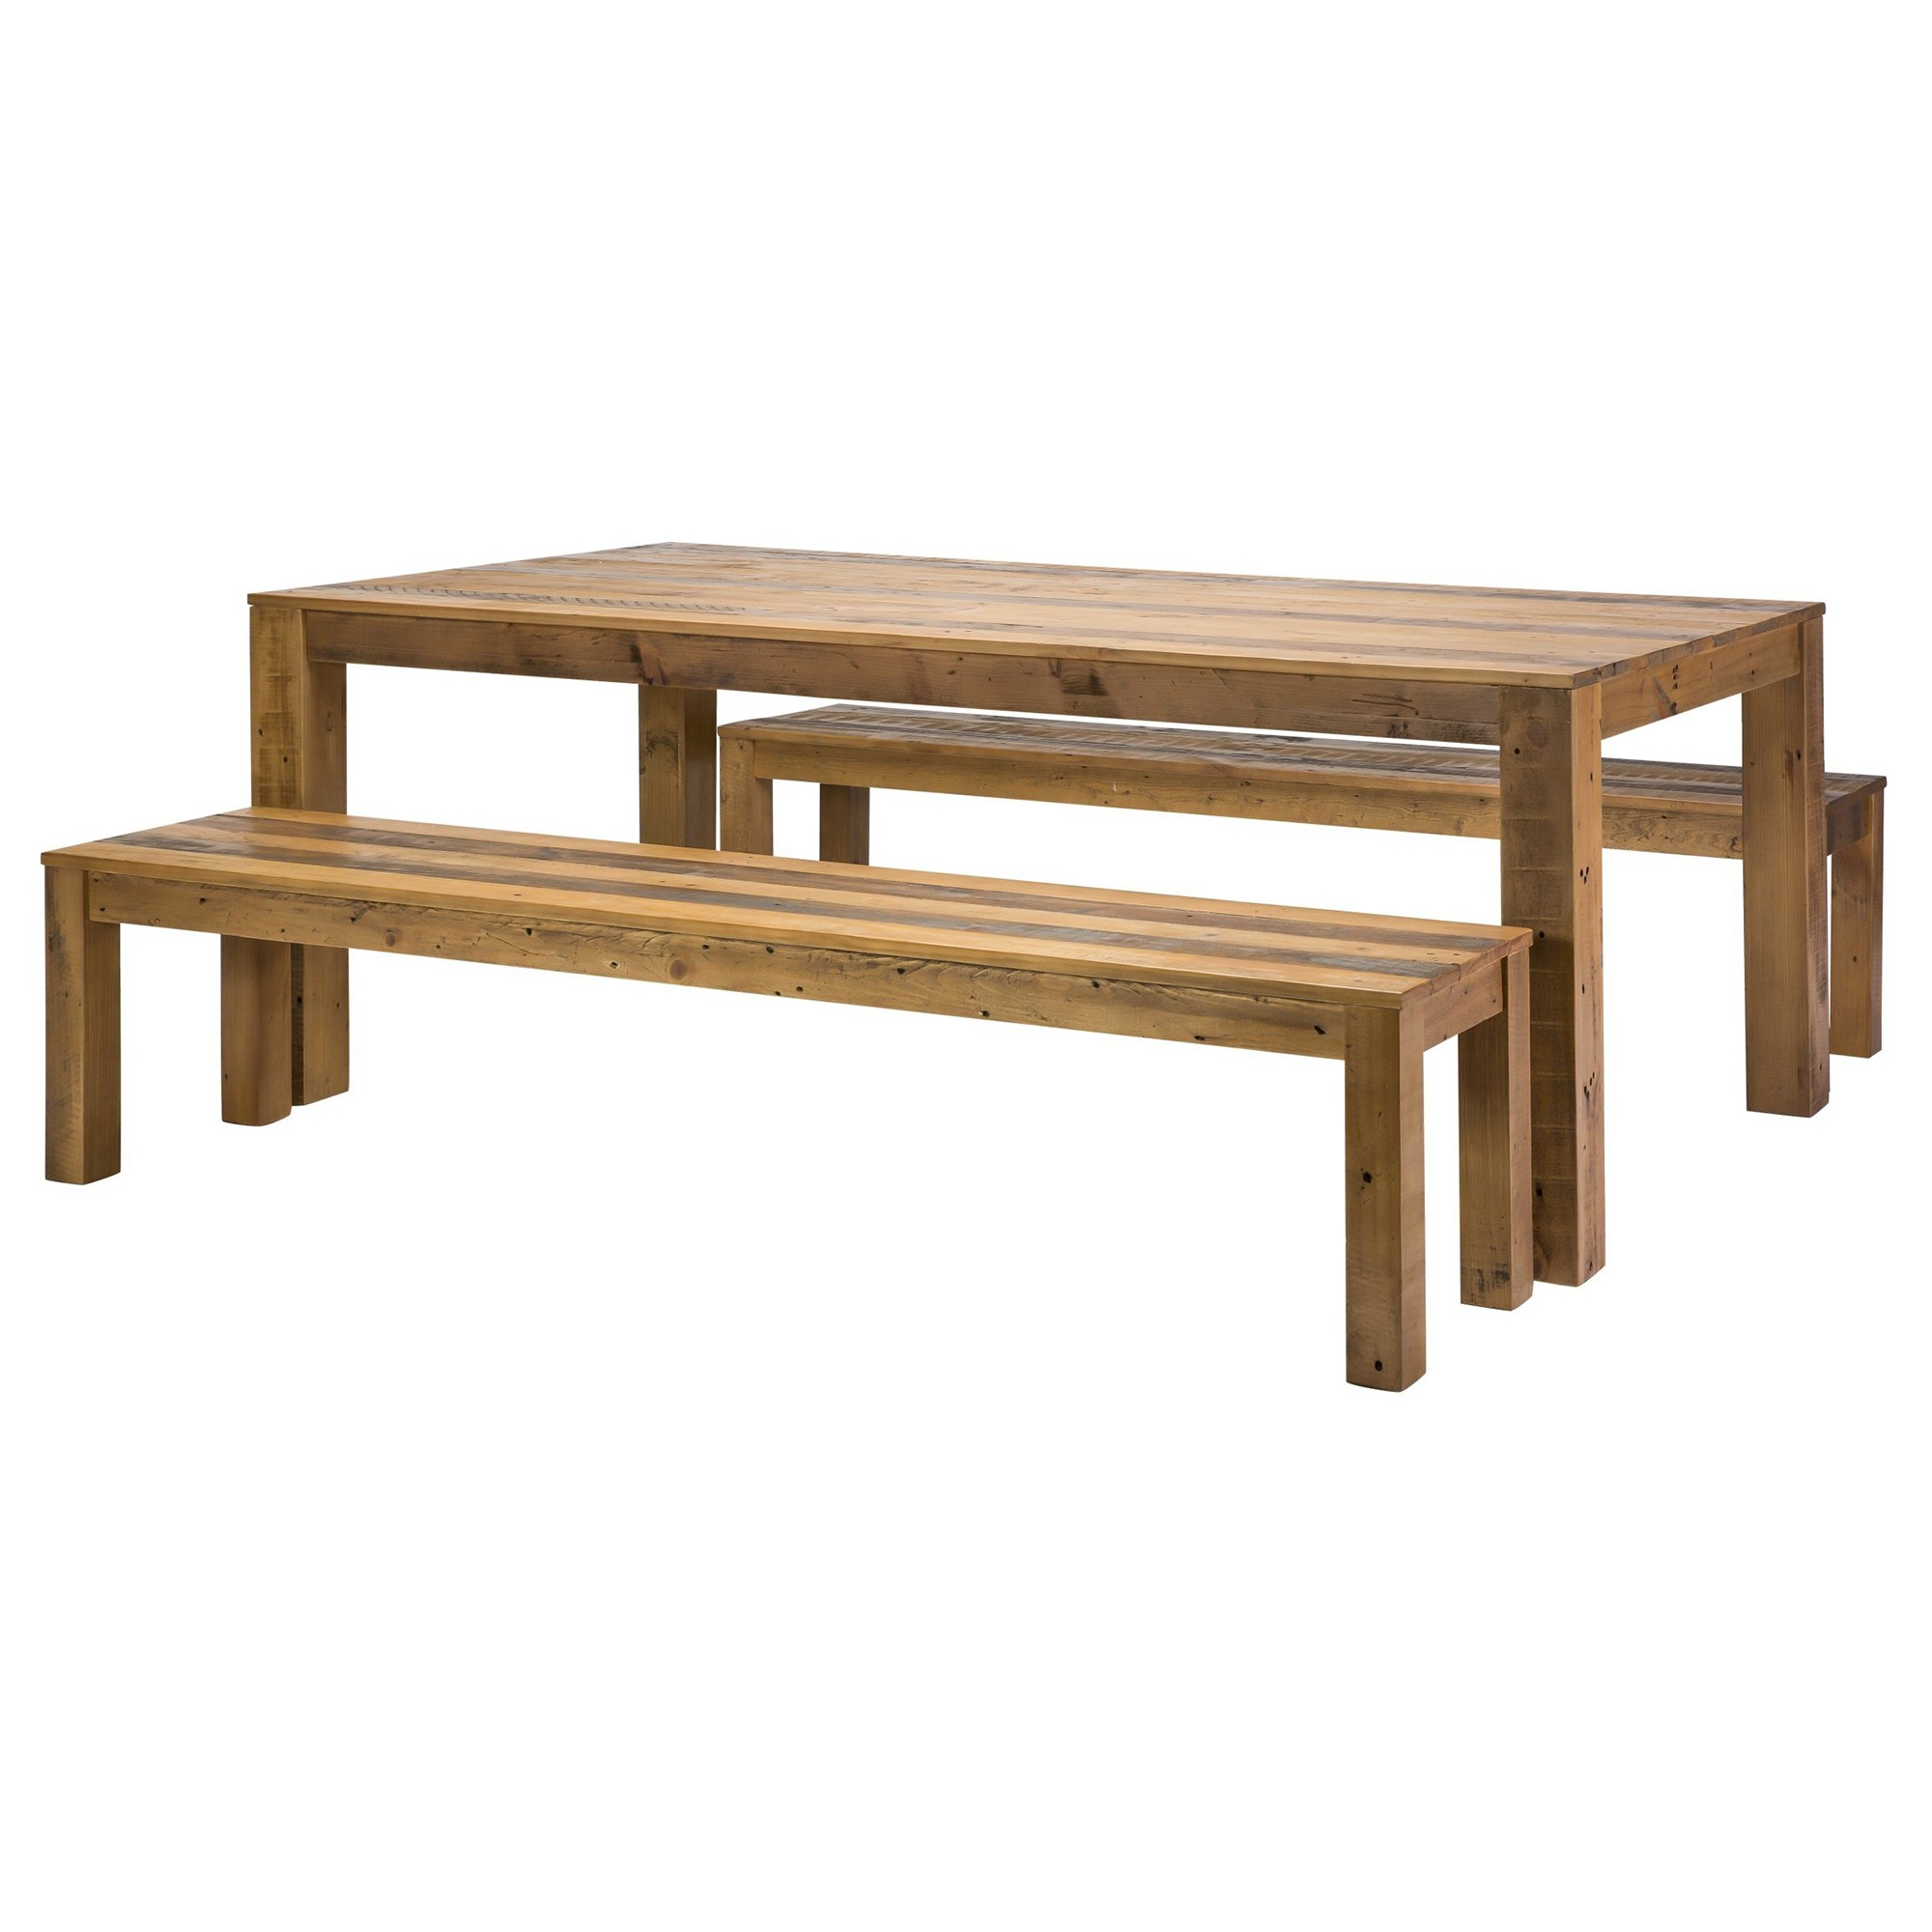 Leland 3 Piece Recycled Timber Dining Table & Bench Set, 210cm